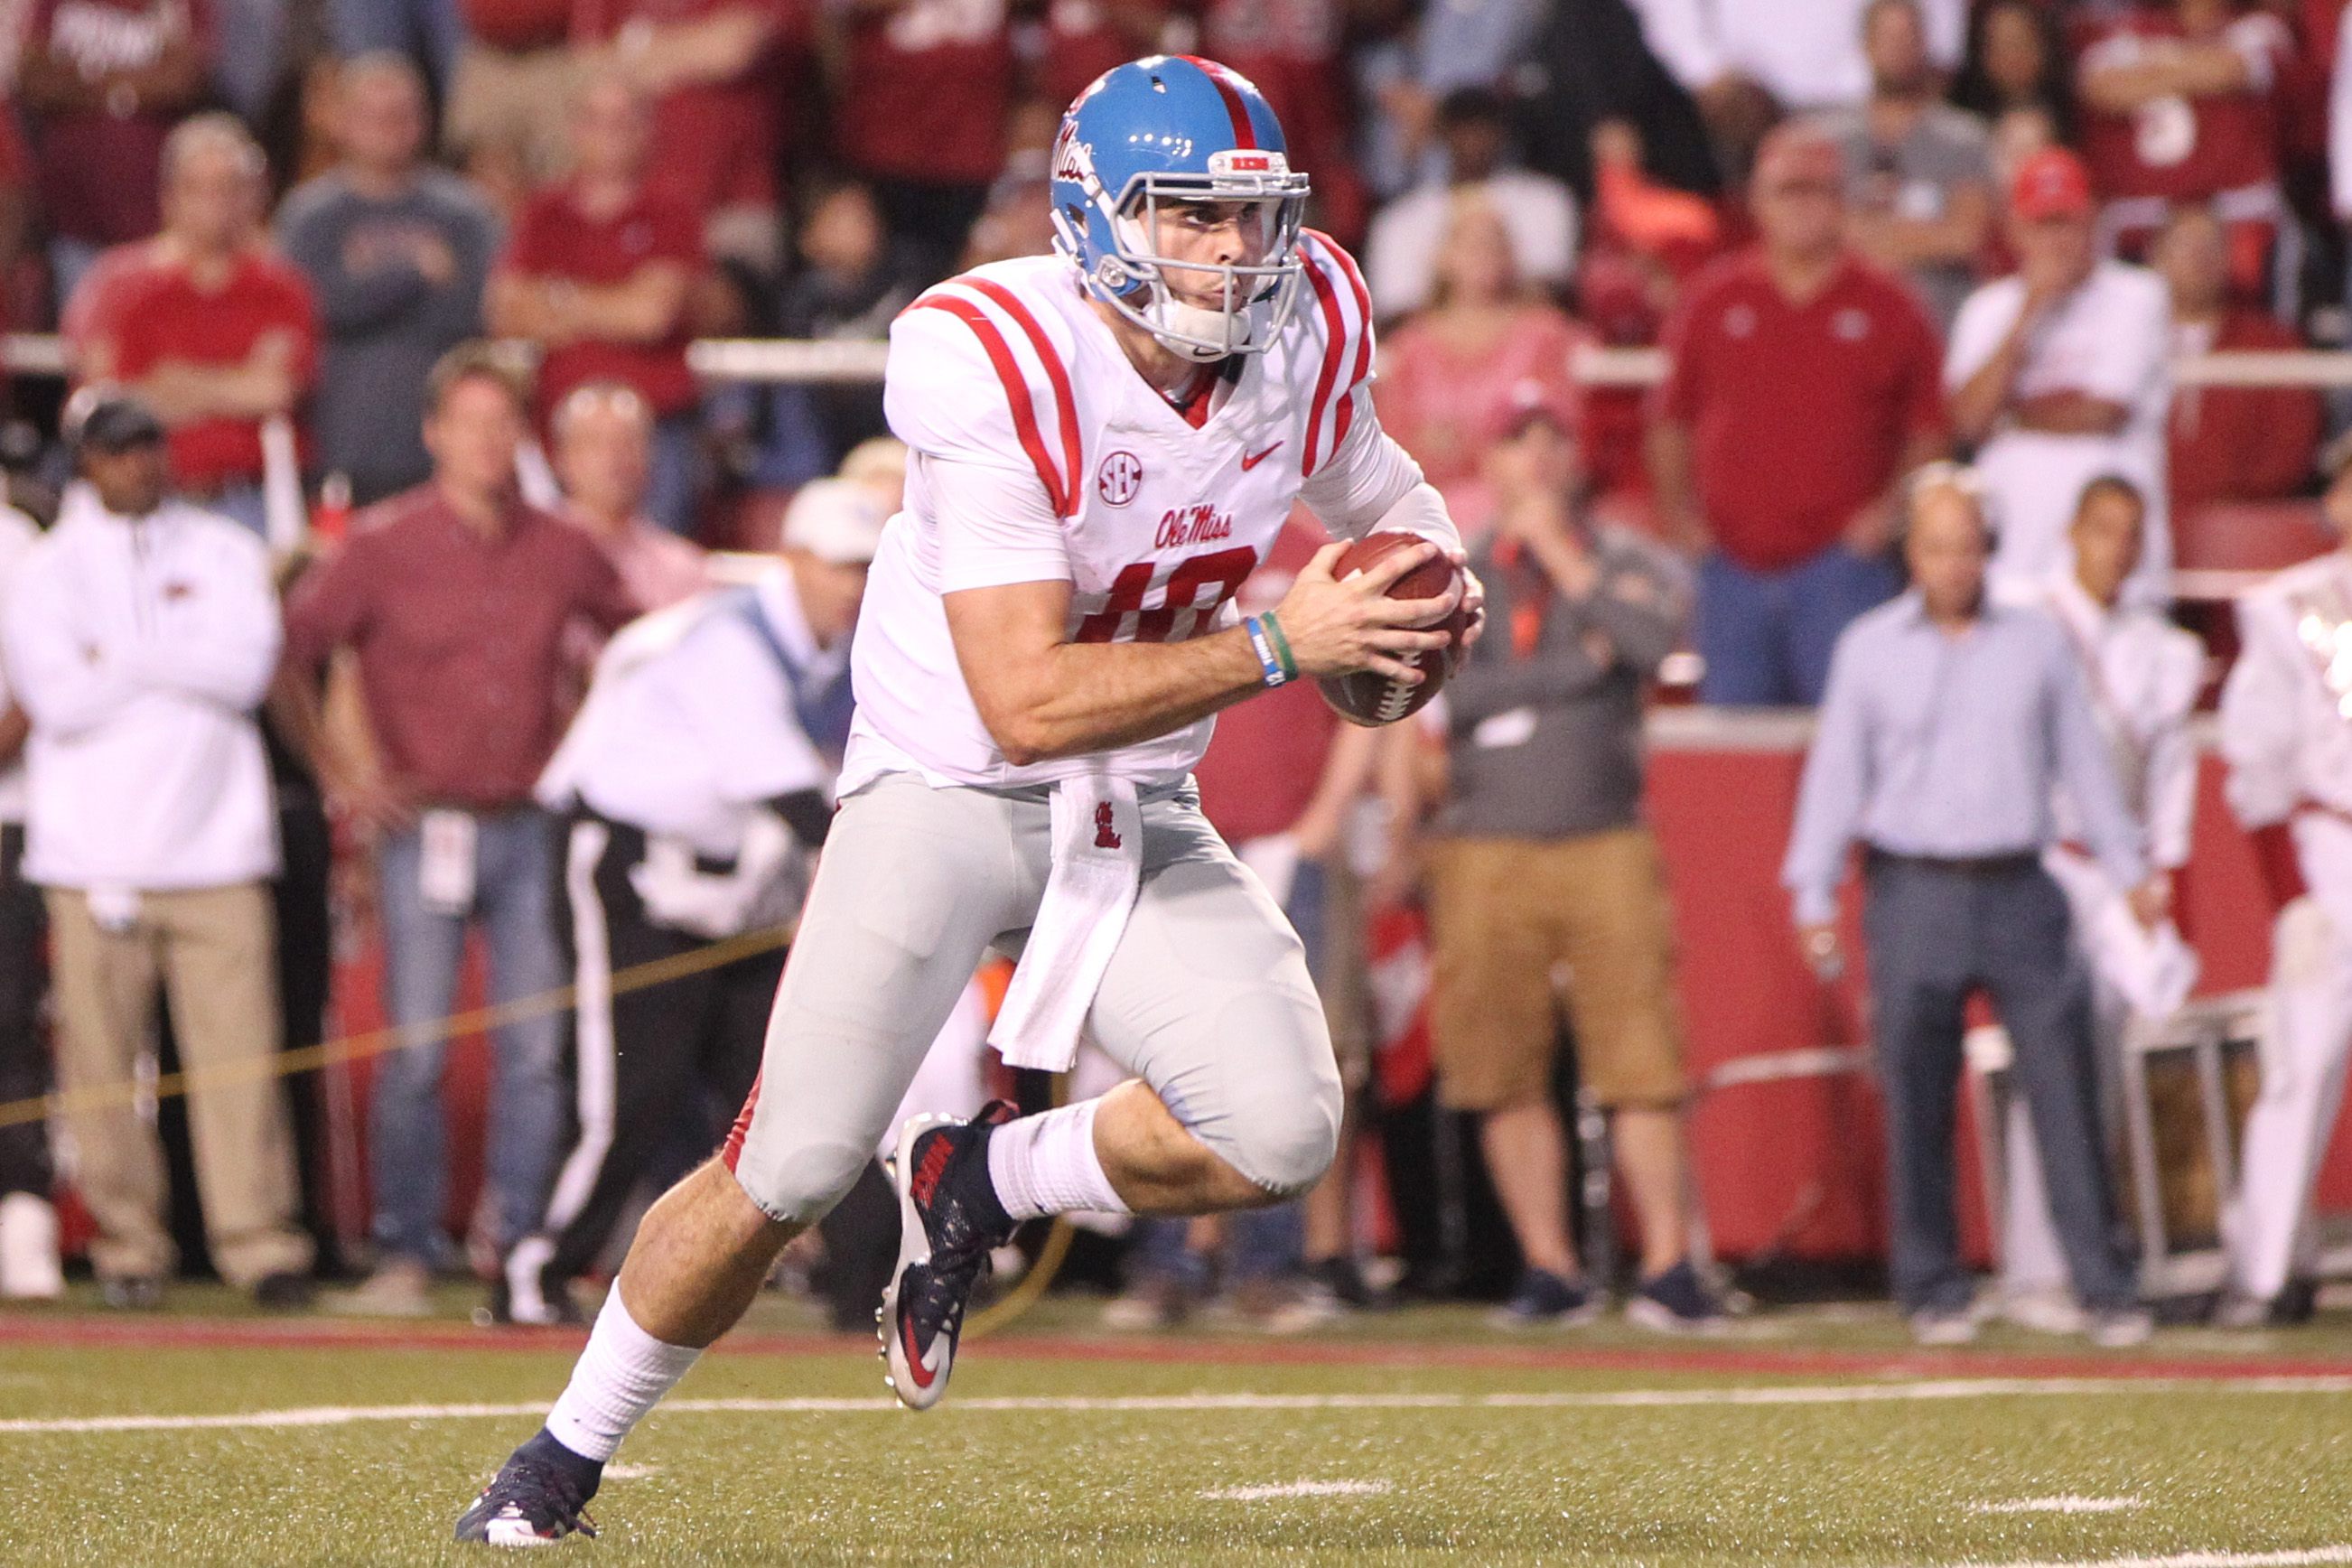 Oct 15, 2016; Fayetteville, AR, USA; Ole Miss Rebels quarterback Chad Kelly (10) rushes for a touchdown in the second quarter against the Arkansas Razorbacks at Donald W. Reynolds Razorback Stadium. Mandatory Credit: Nelson Chenault-USA TODAY Sports